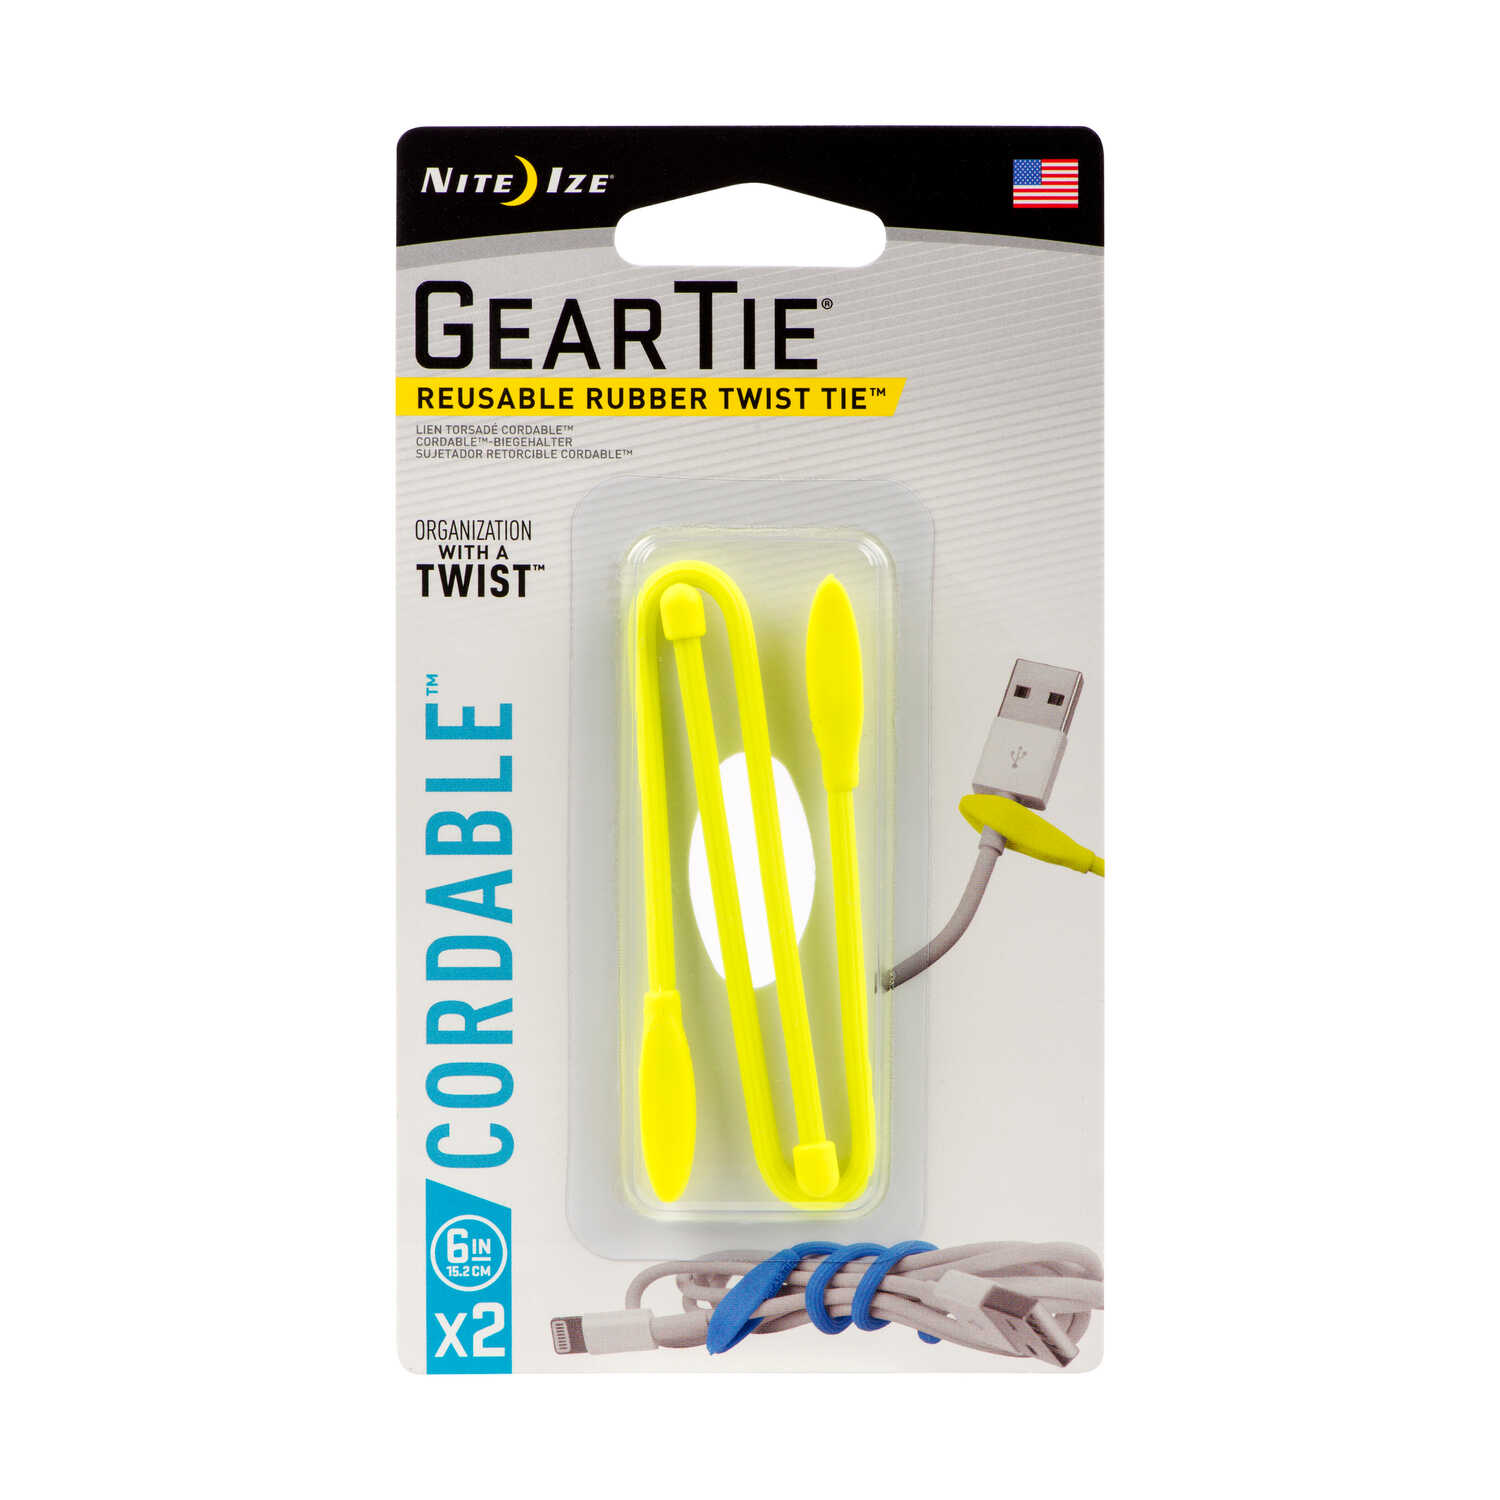 Nite Ize  Gear Tie Cordable  6 in. L Yellow  Cable Tie  2 pk